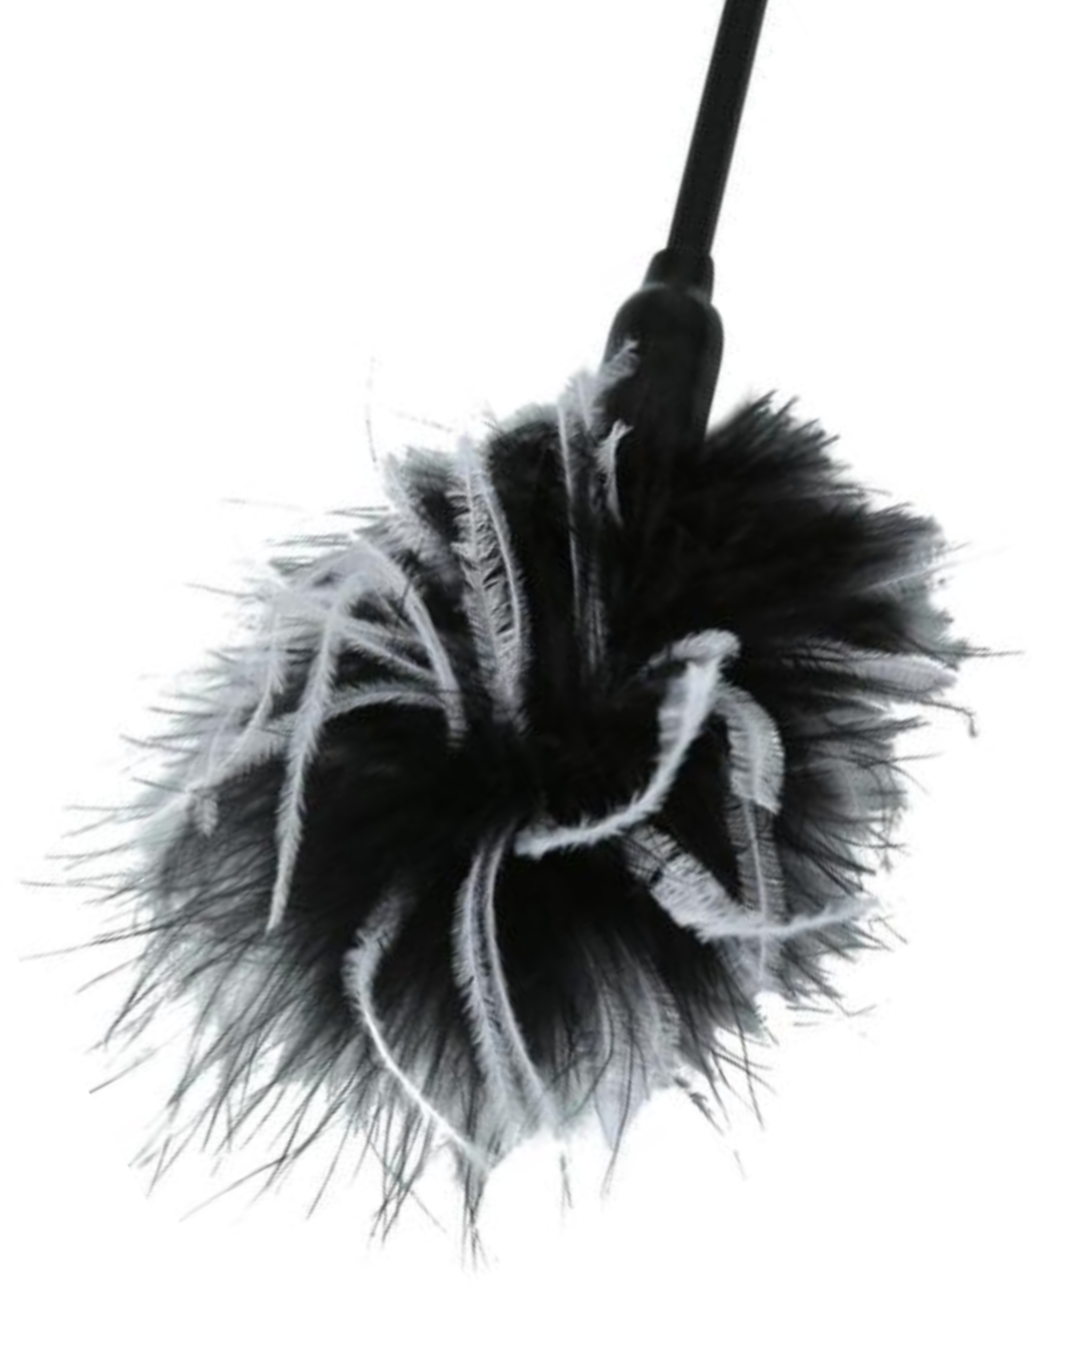 Sex & Mischief Whip & Tickle Feather Tickler & Whip - Black & White close up of the tickler